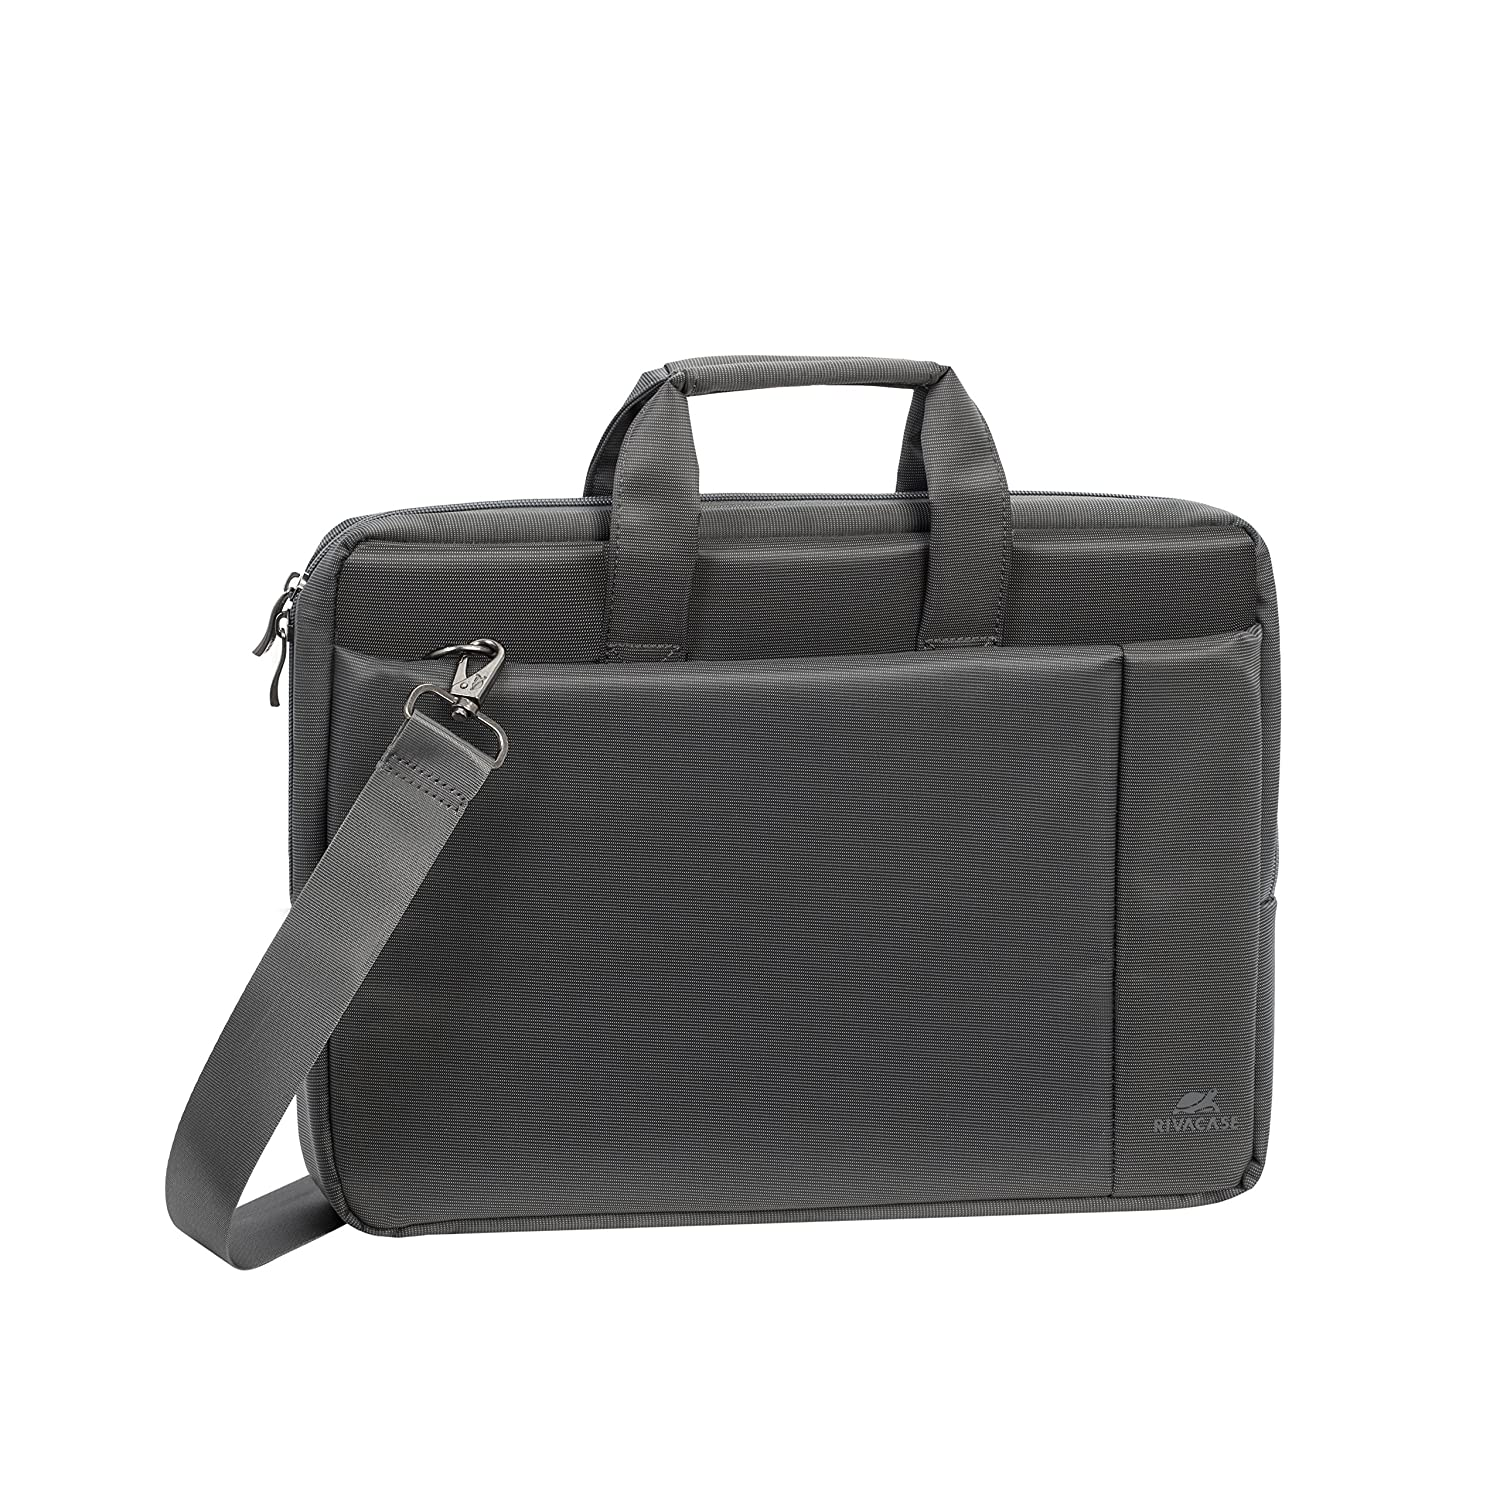 d7e843dca527 Rivacase 15.6 inch Stylish Laptop Shoulder Bag w/Padded Compartment ...